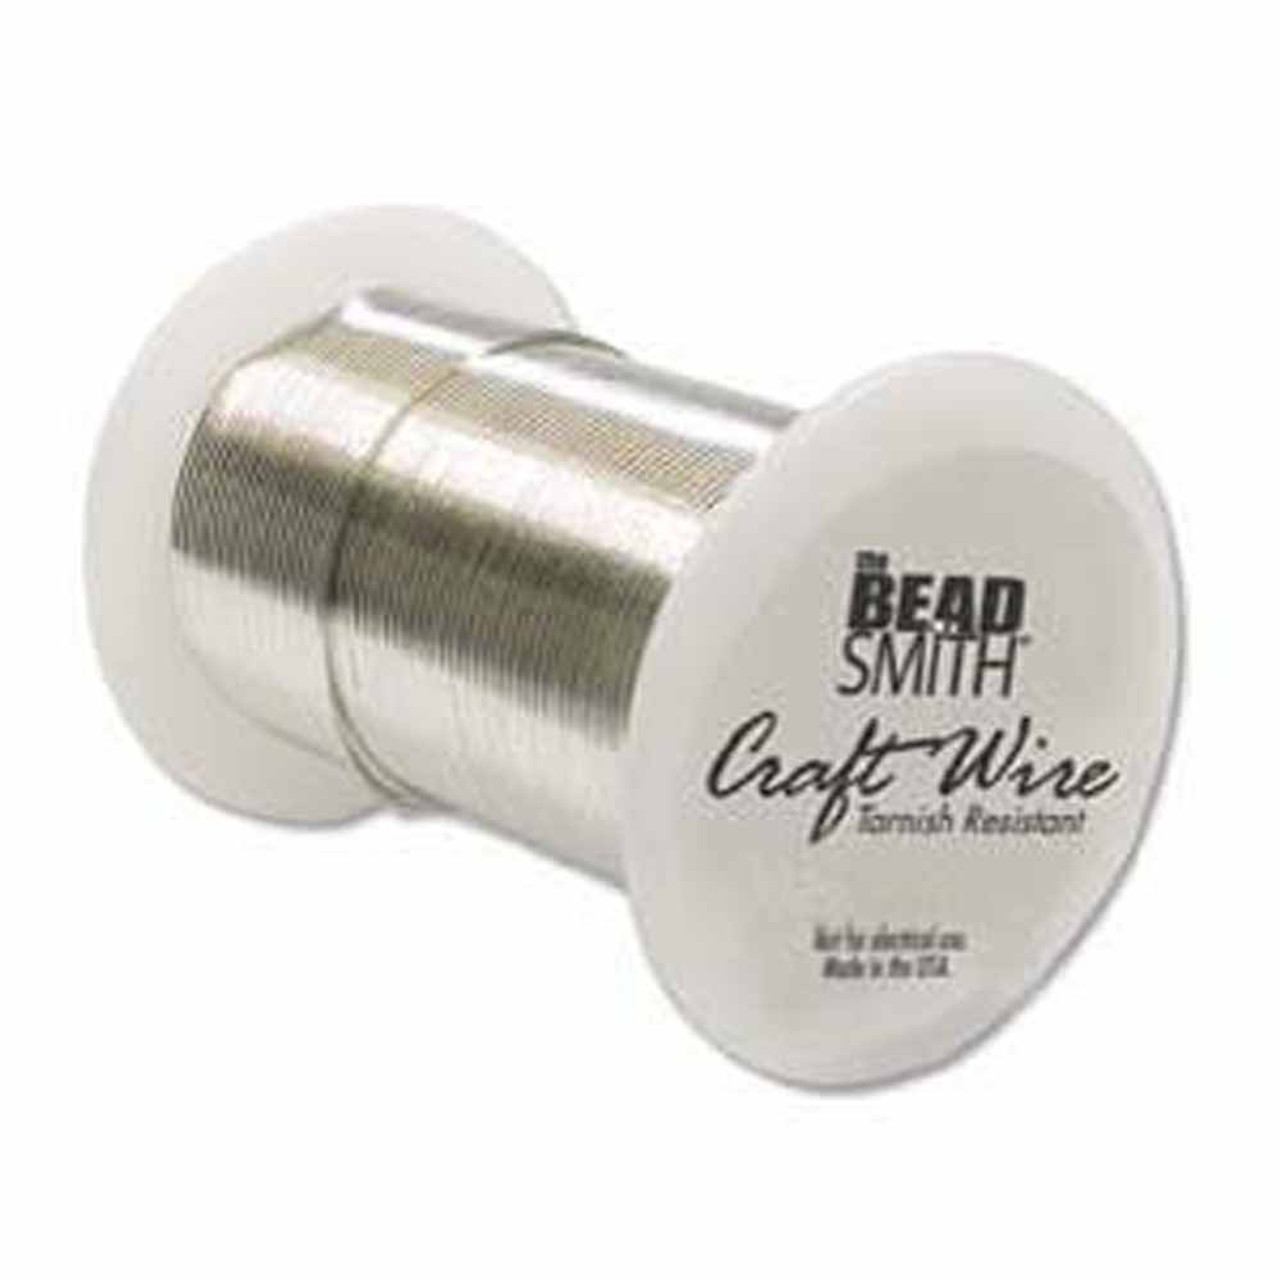 18 Gauge The Bead Smithtm Tarnish Resistant Craft Wire Silver Ntw18s